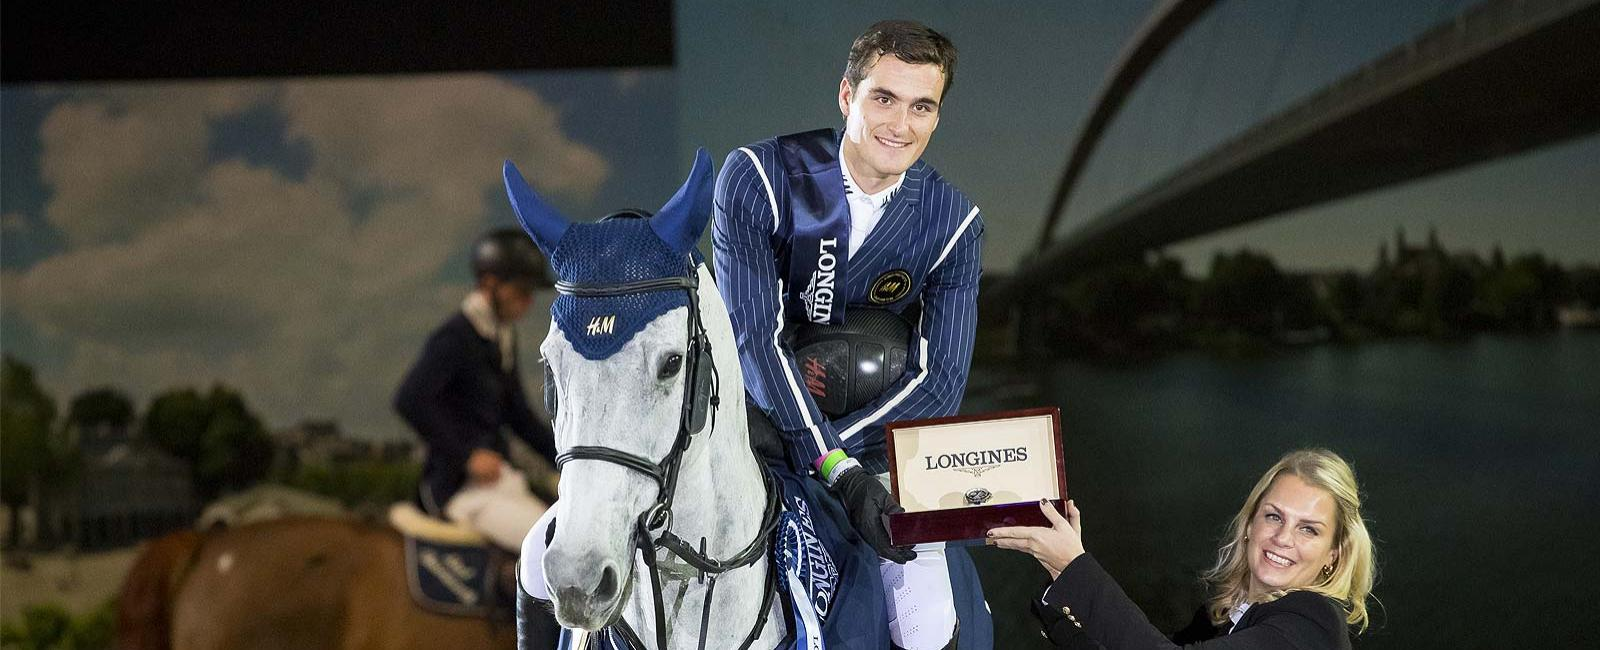 Olivier Philippaerts; H&M Legend of Love; the Longines Trophy; Grand Prix of Maastricht